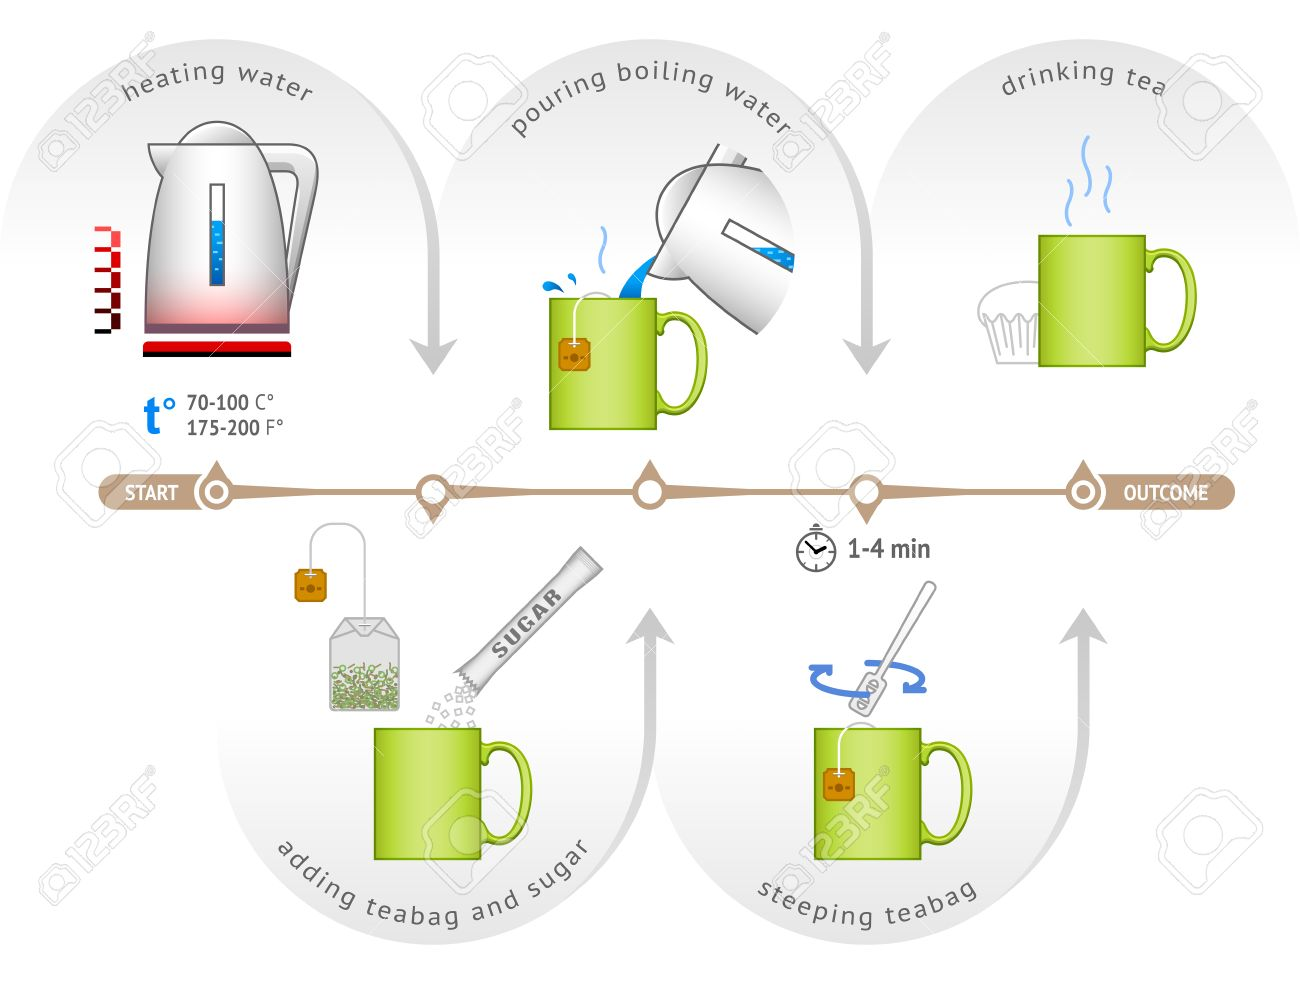 Special Brewing Step By Step Instructions Step By Step Instructions Process Infographic Vlookup Step By Step Instructions On How To Solve A Rubik S Cube Infographic Brewing Step By Step Instructions M inspiration Step By Step Instructions